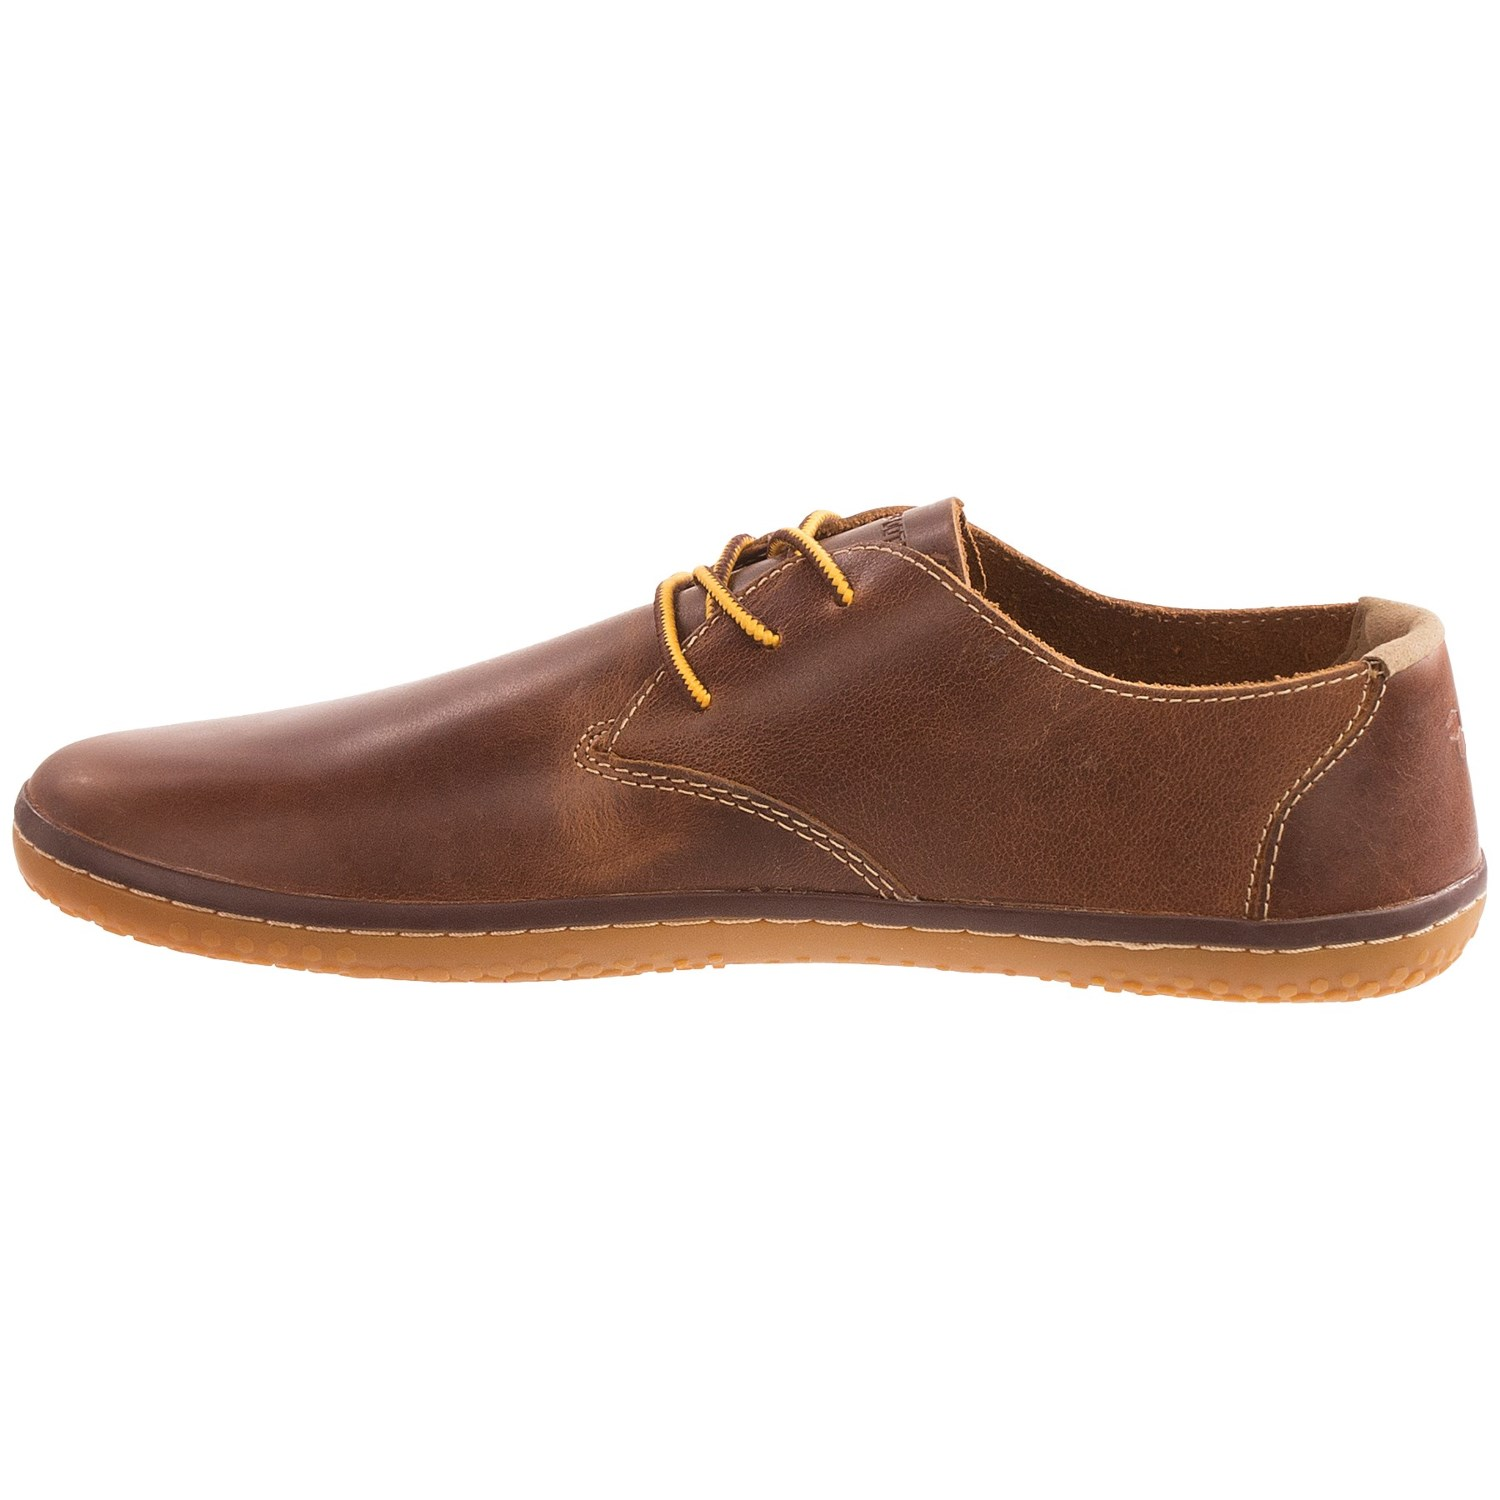 Vivobarefoot Leather Shoes